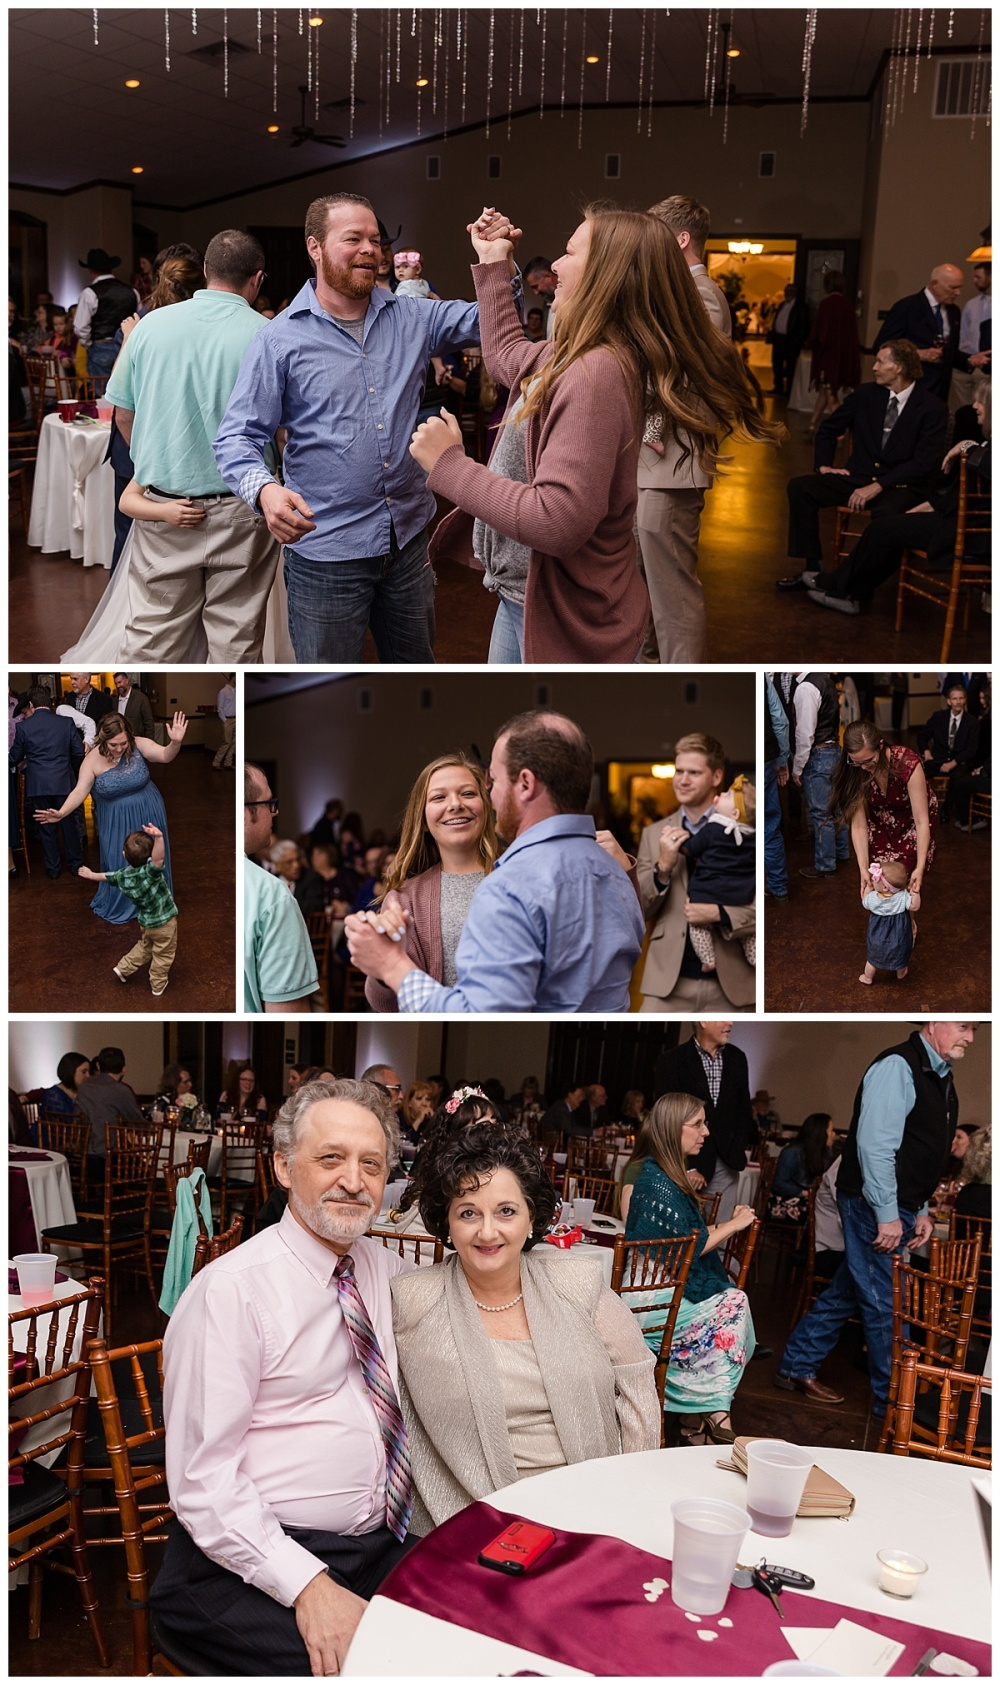 Wedding-Photographer-The-Legacy-Jacksonville-Texas-Arron-Krystal-Carly-Barton-Photography_0061.jpg